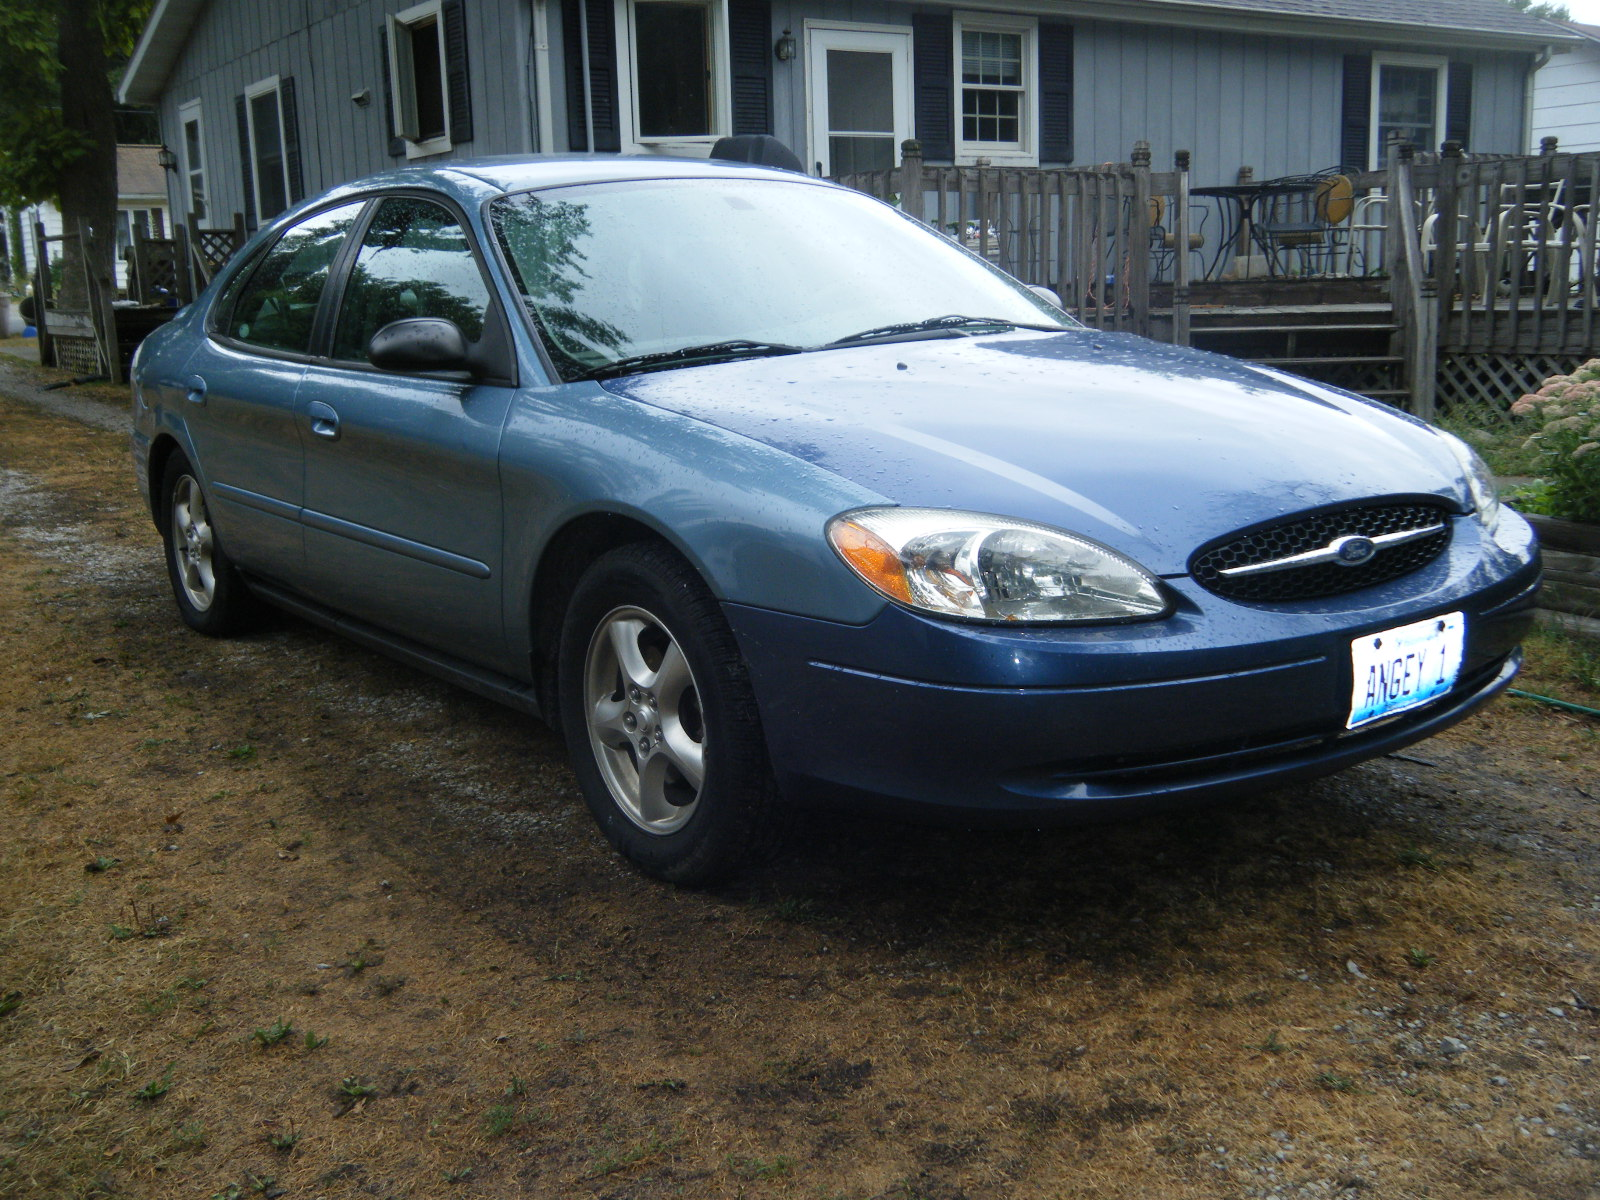 Ford Taurus 2005 photo - 5